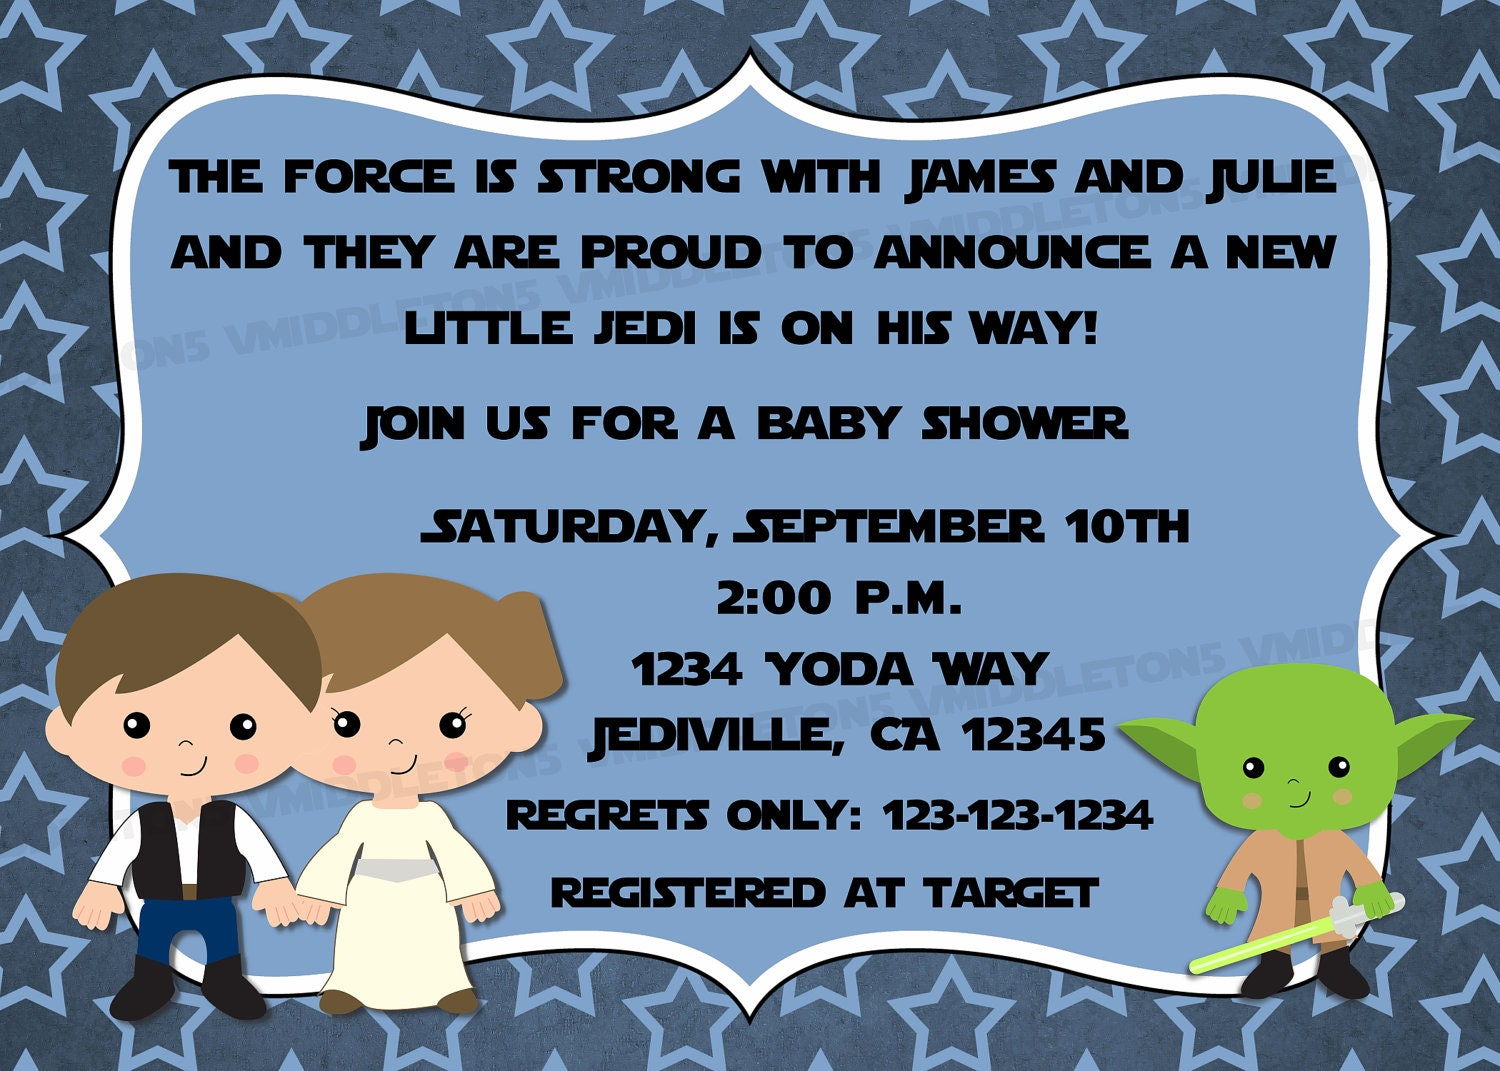 jedi star wars theme inspired baby shower invitation with